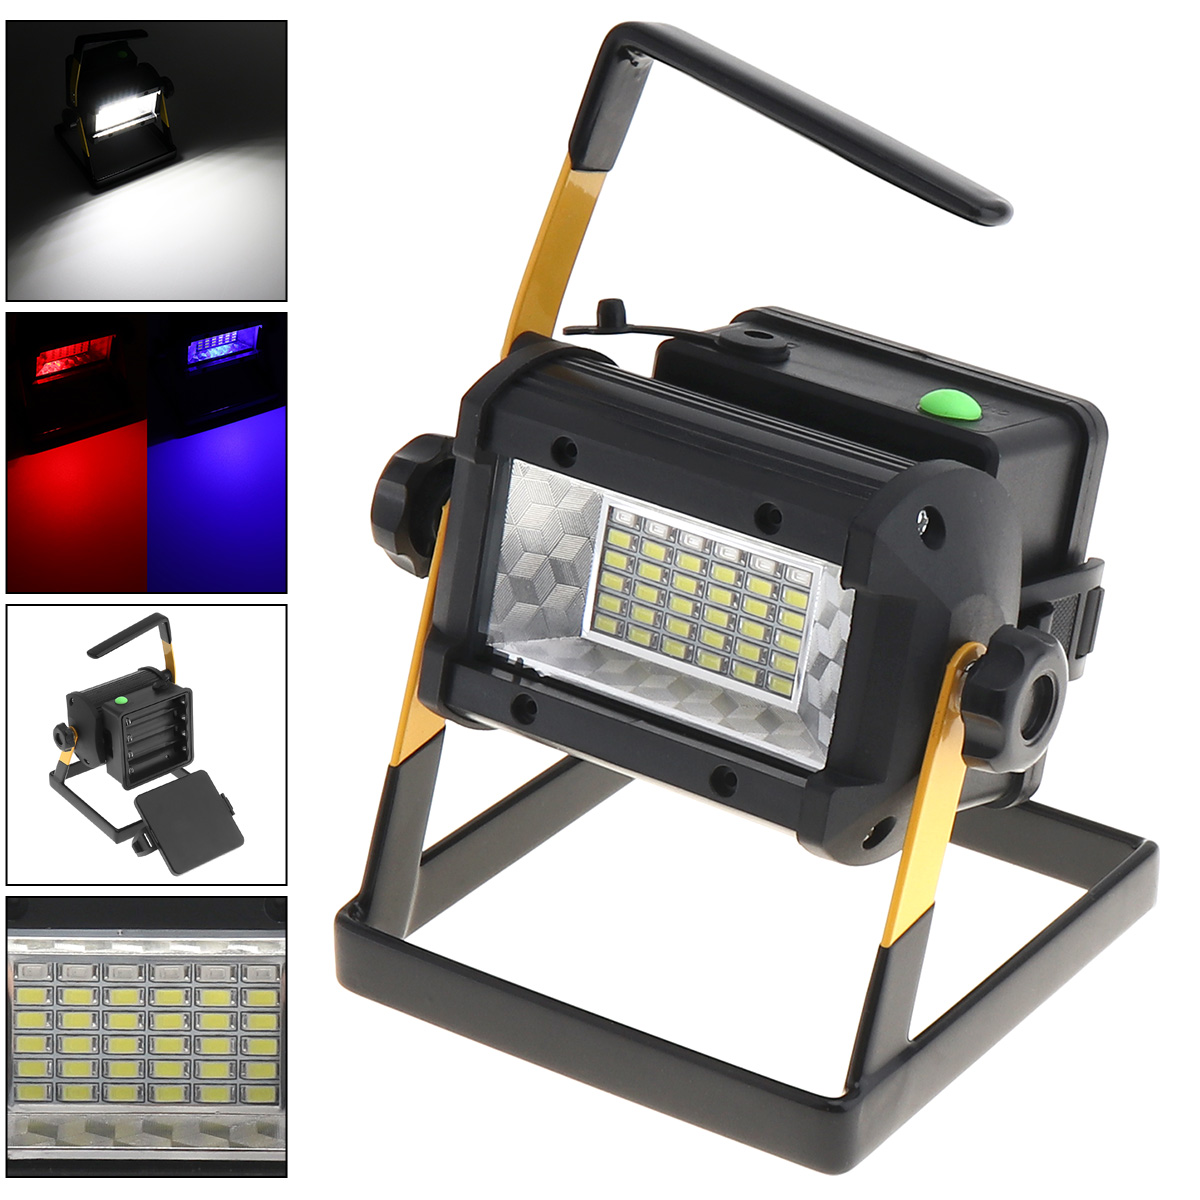 Floodlights Capable 50w Waterproof Search Led Floodlight 36 Xpe Leds Emergency Lamp With 3 Modes Brightness Portable Stent For Site/outdoors/camping Latest Technology Outdoor Lighting